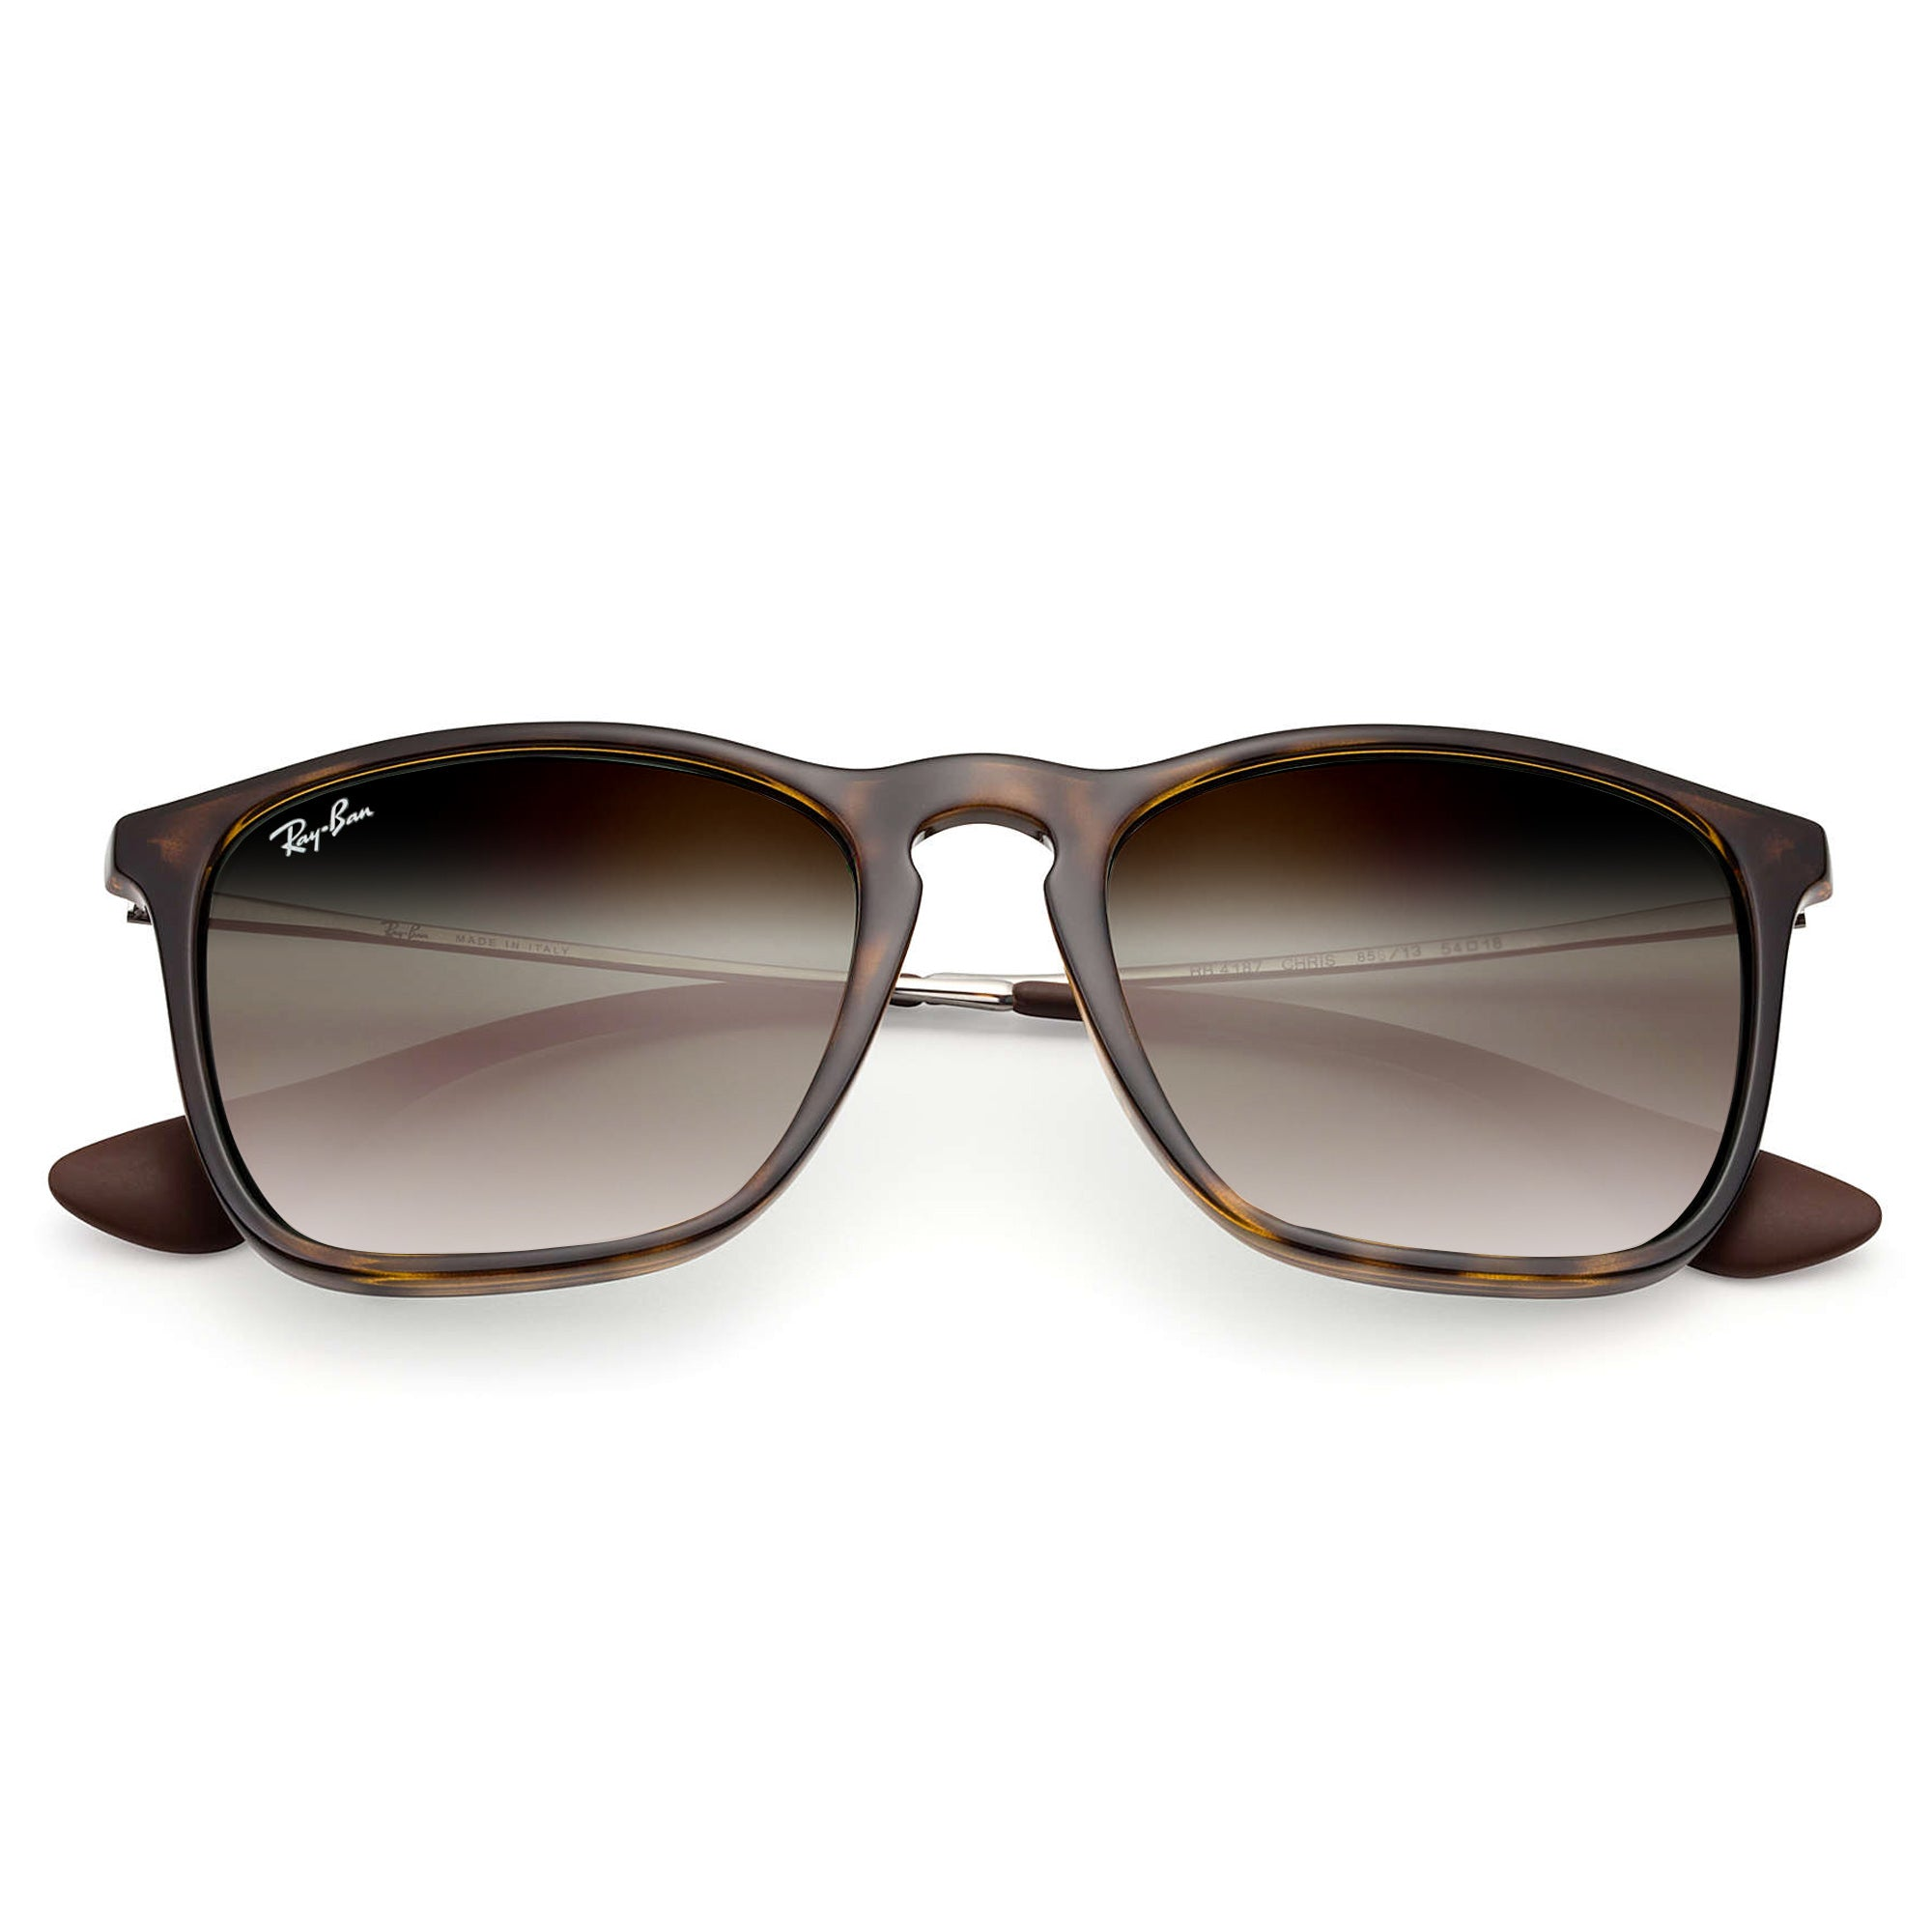 b9a0f26302 Ray-Ban CHRIS 4187 NEW! UNISEX - TORTOISE - BROWN GRADIENT 856-13-54 ...